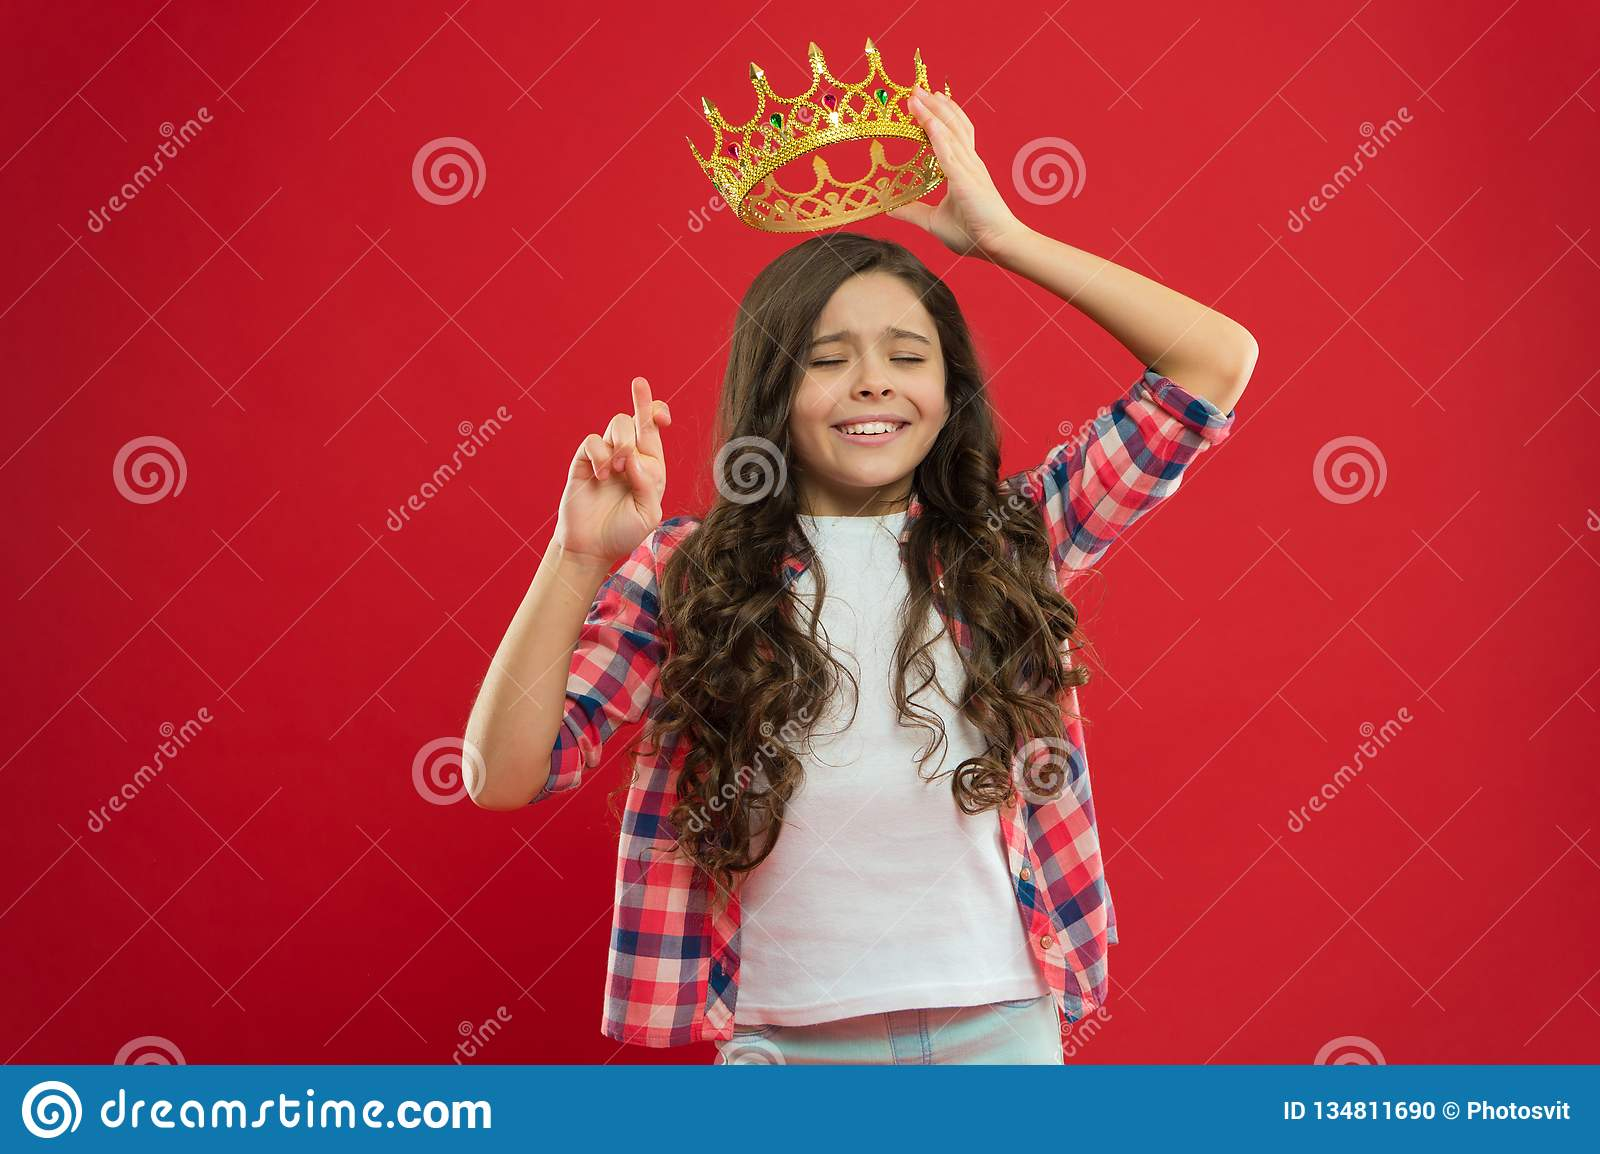 Hope for the best. Kid hold golden crown symbol of princess. Childhood concept. Every girl dreaming to become princess